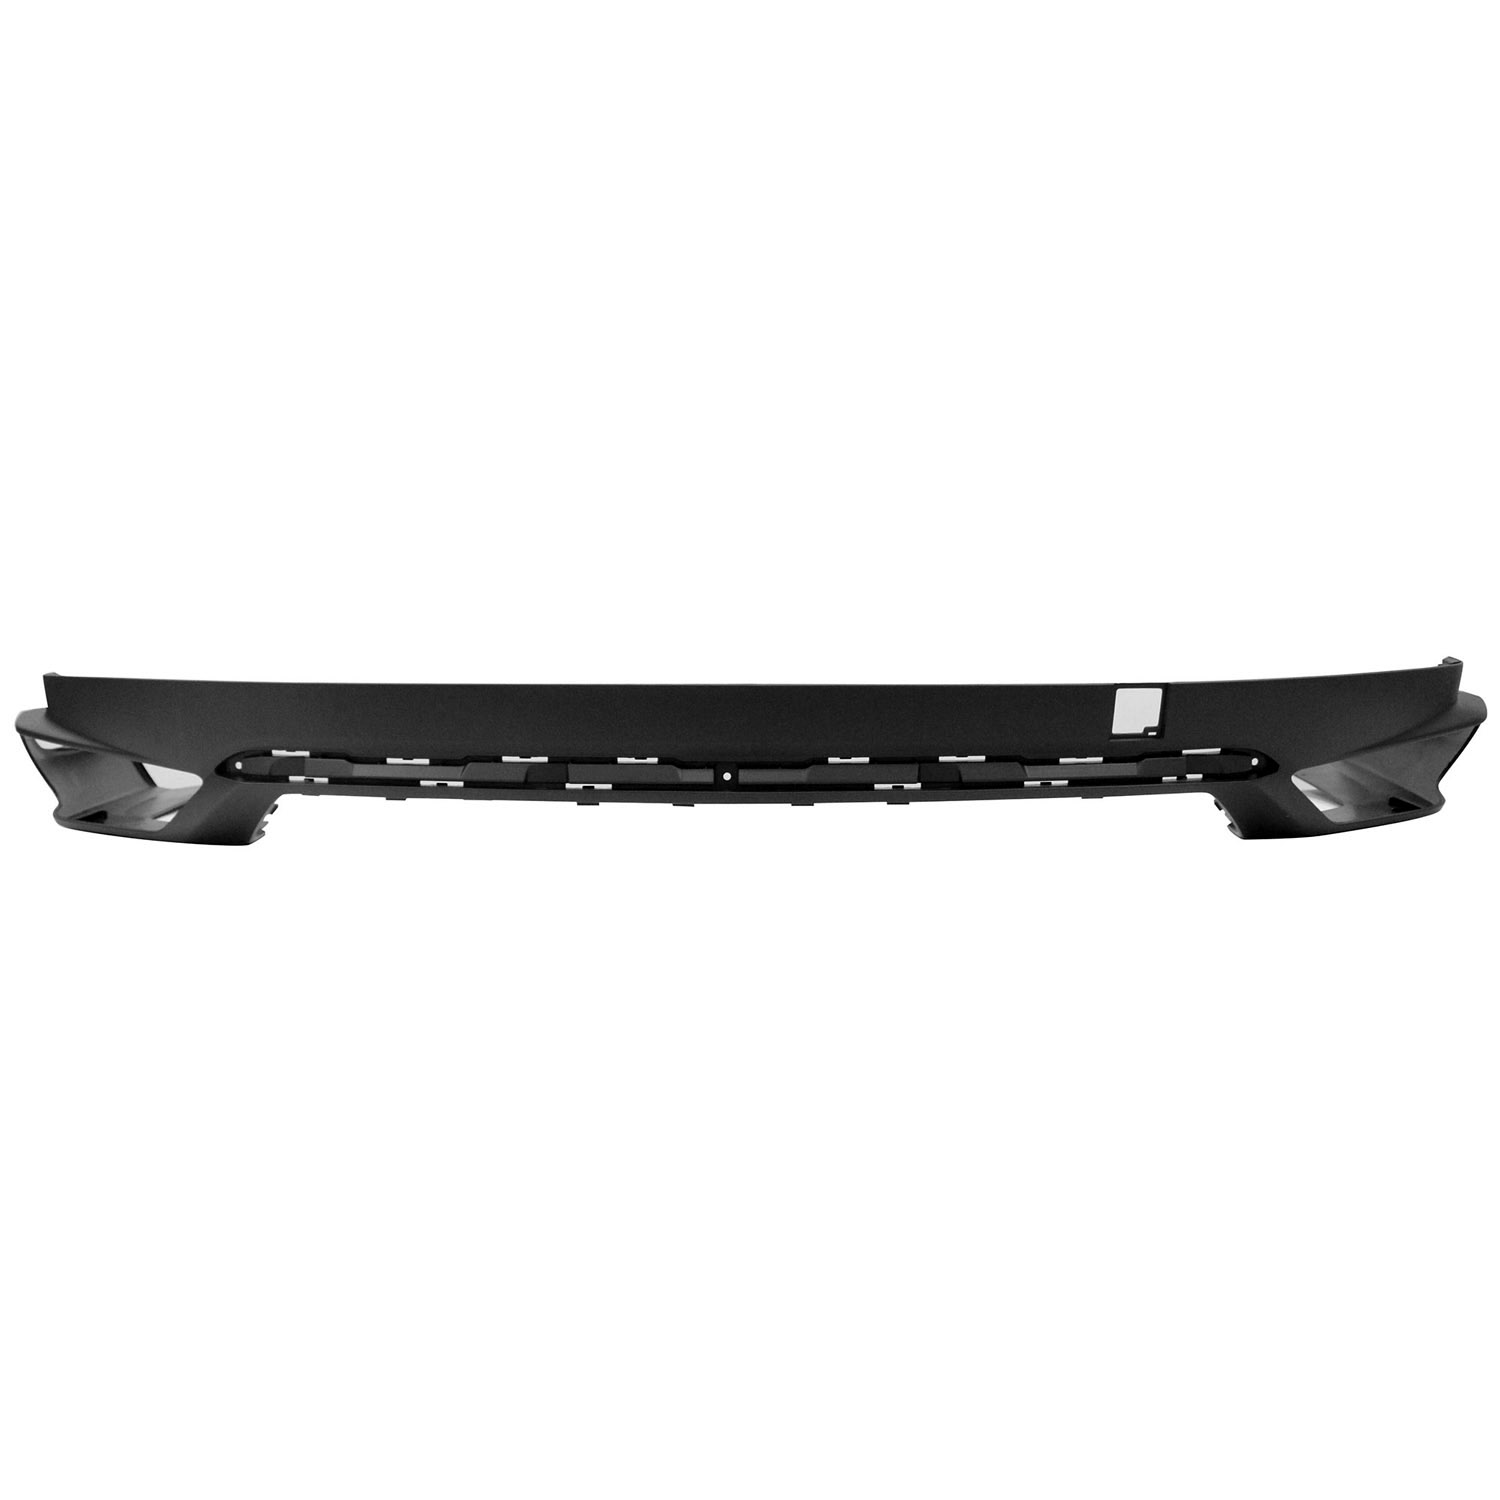 Fits 2017-2019 Acura MDX Rear Lower Bumper Cover